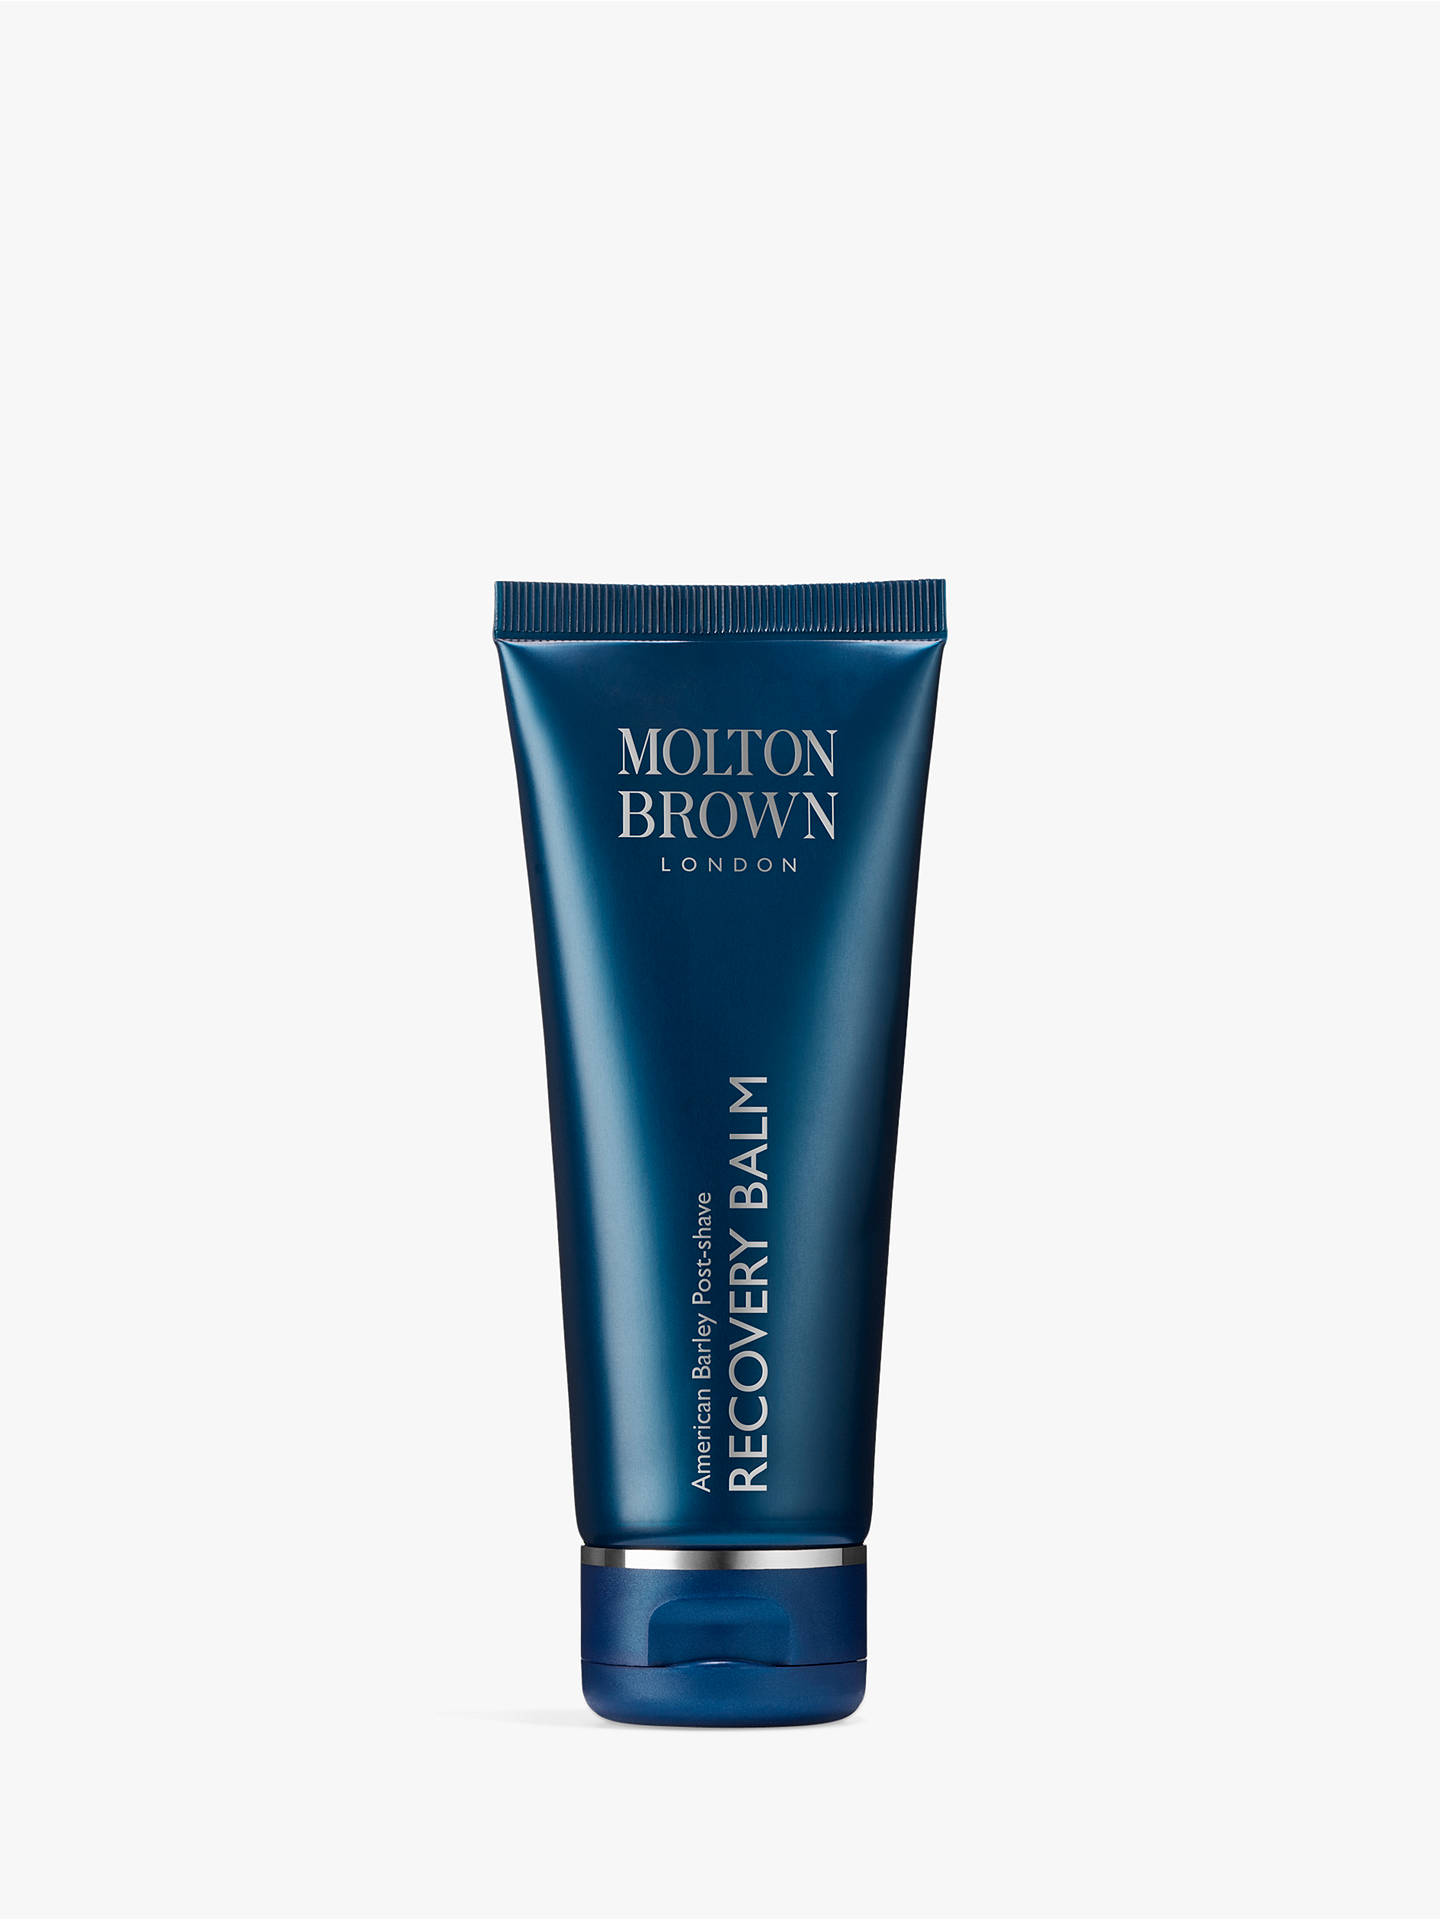 BuyMolton Brown For Men Post Shave Recovery Balm, 75ml Online at johnlewis.com